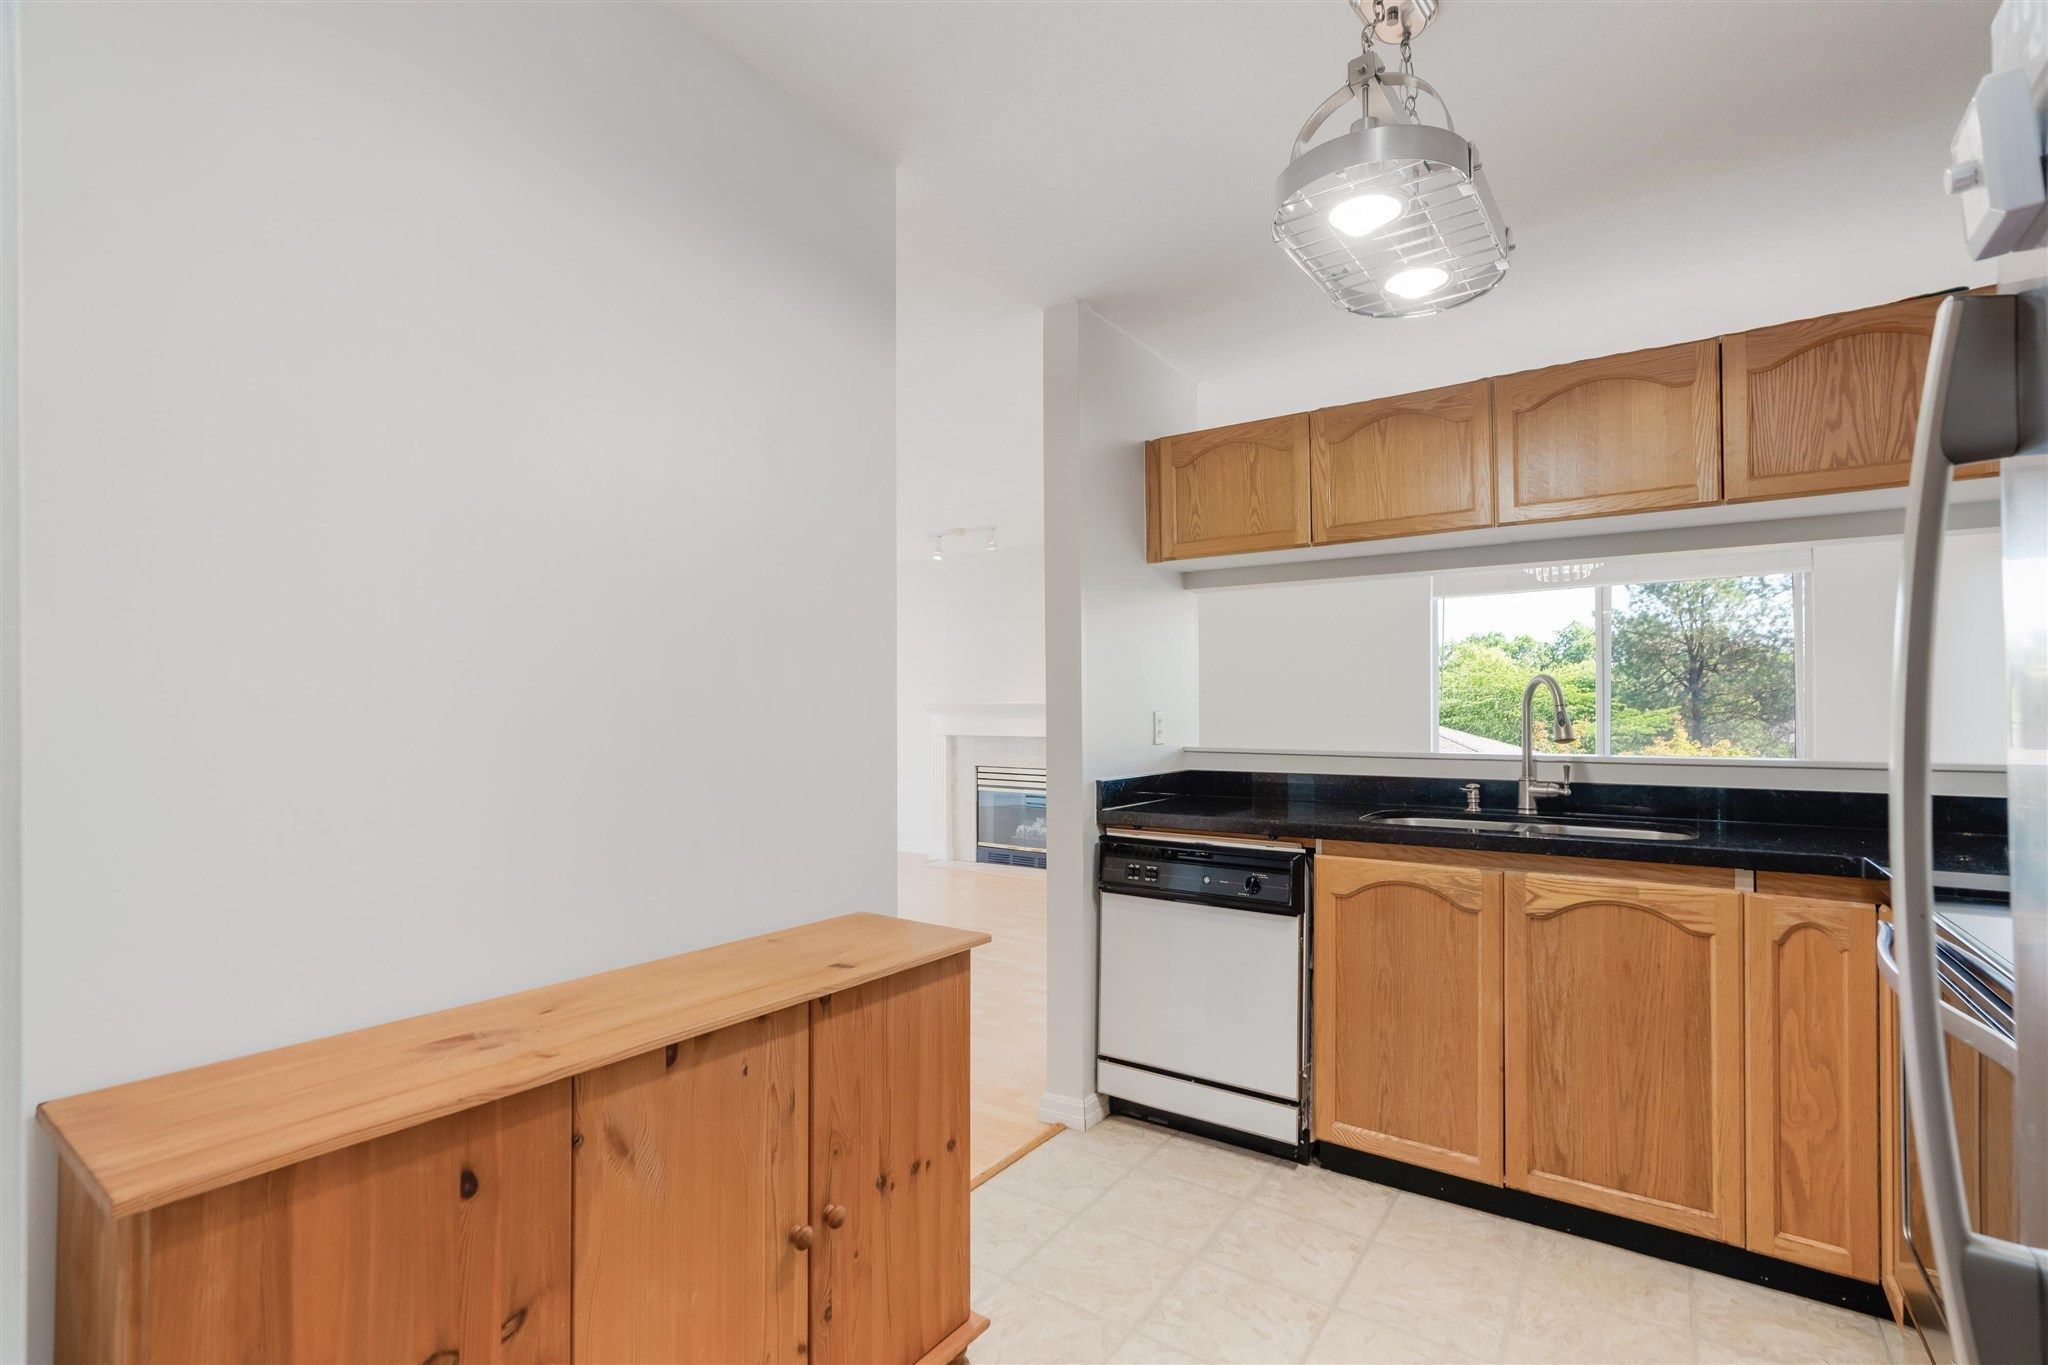 Photo 16: Photos: 303 1171 PIPELINE Road in Coquitlam: New Horizons Condo for sale : MLS®# R2607932